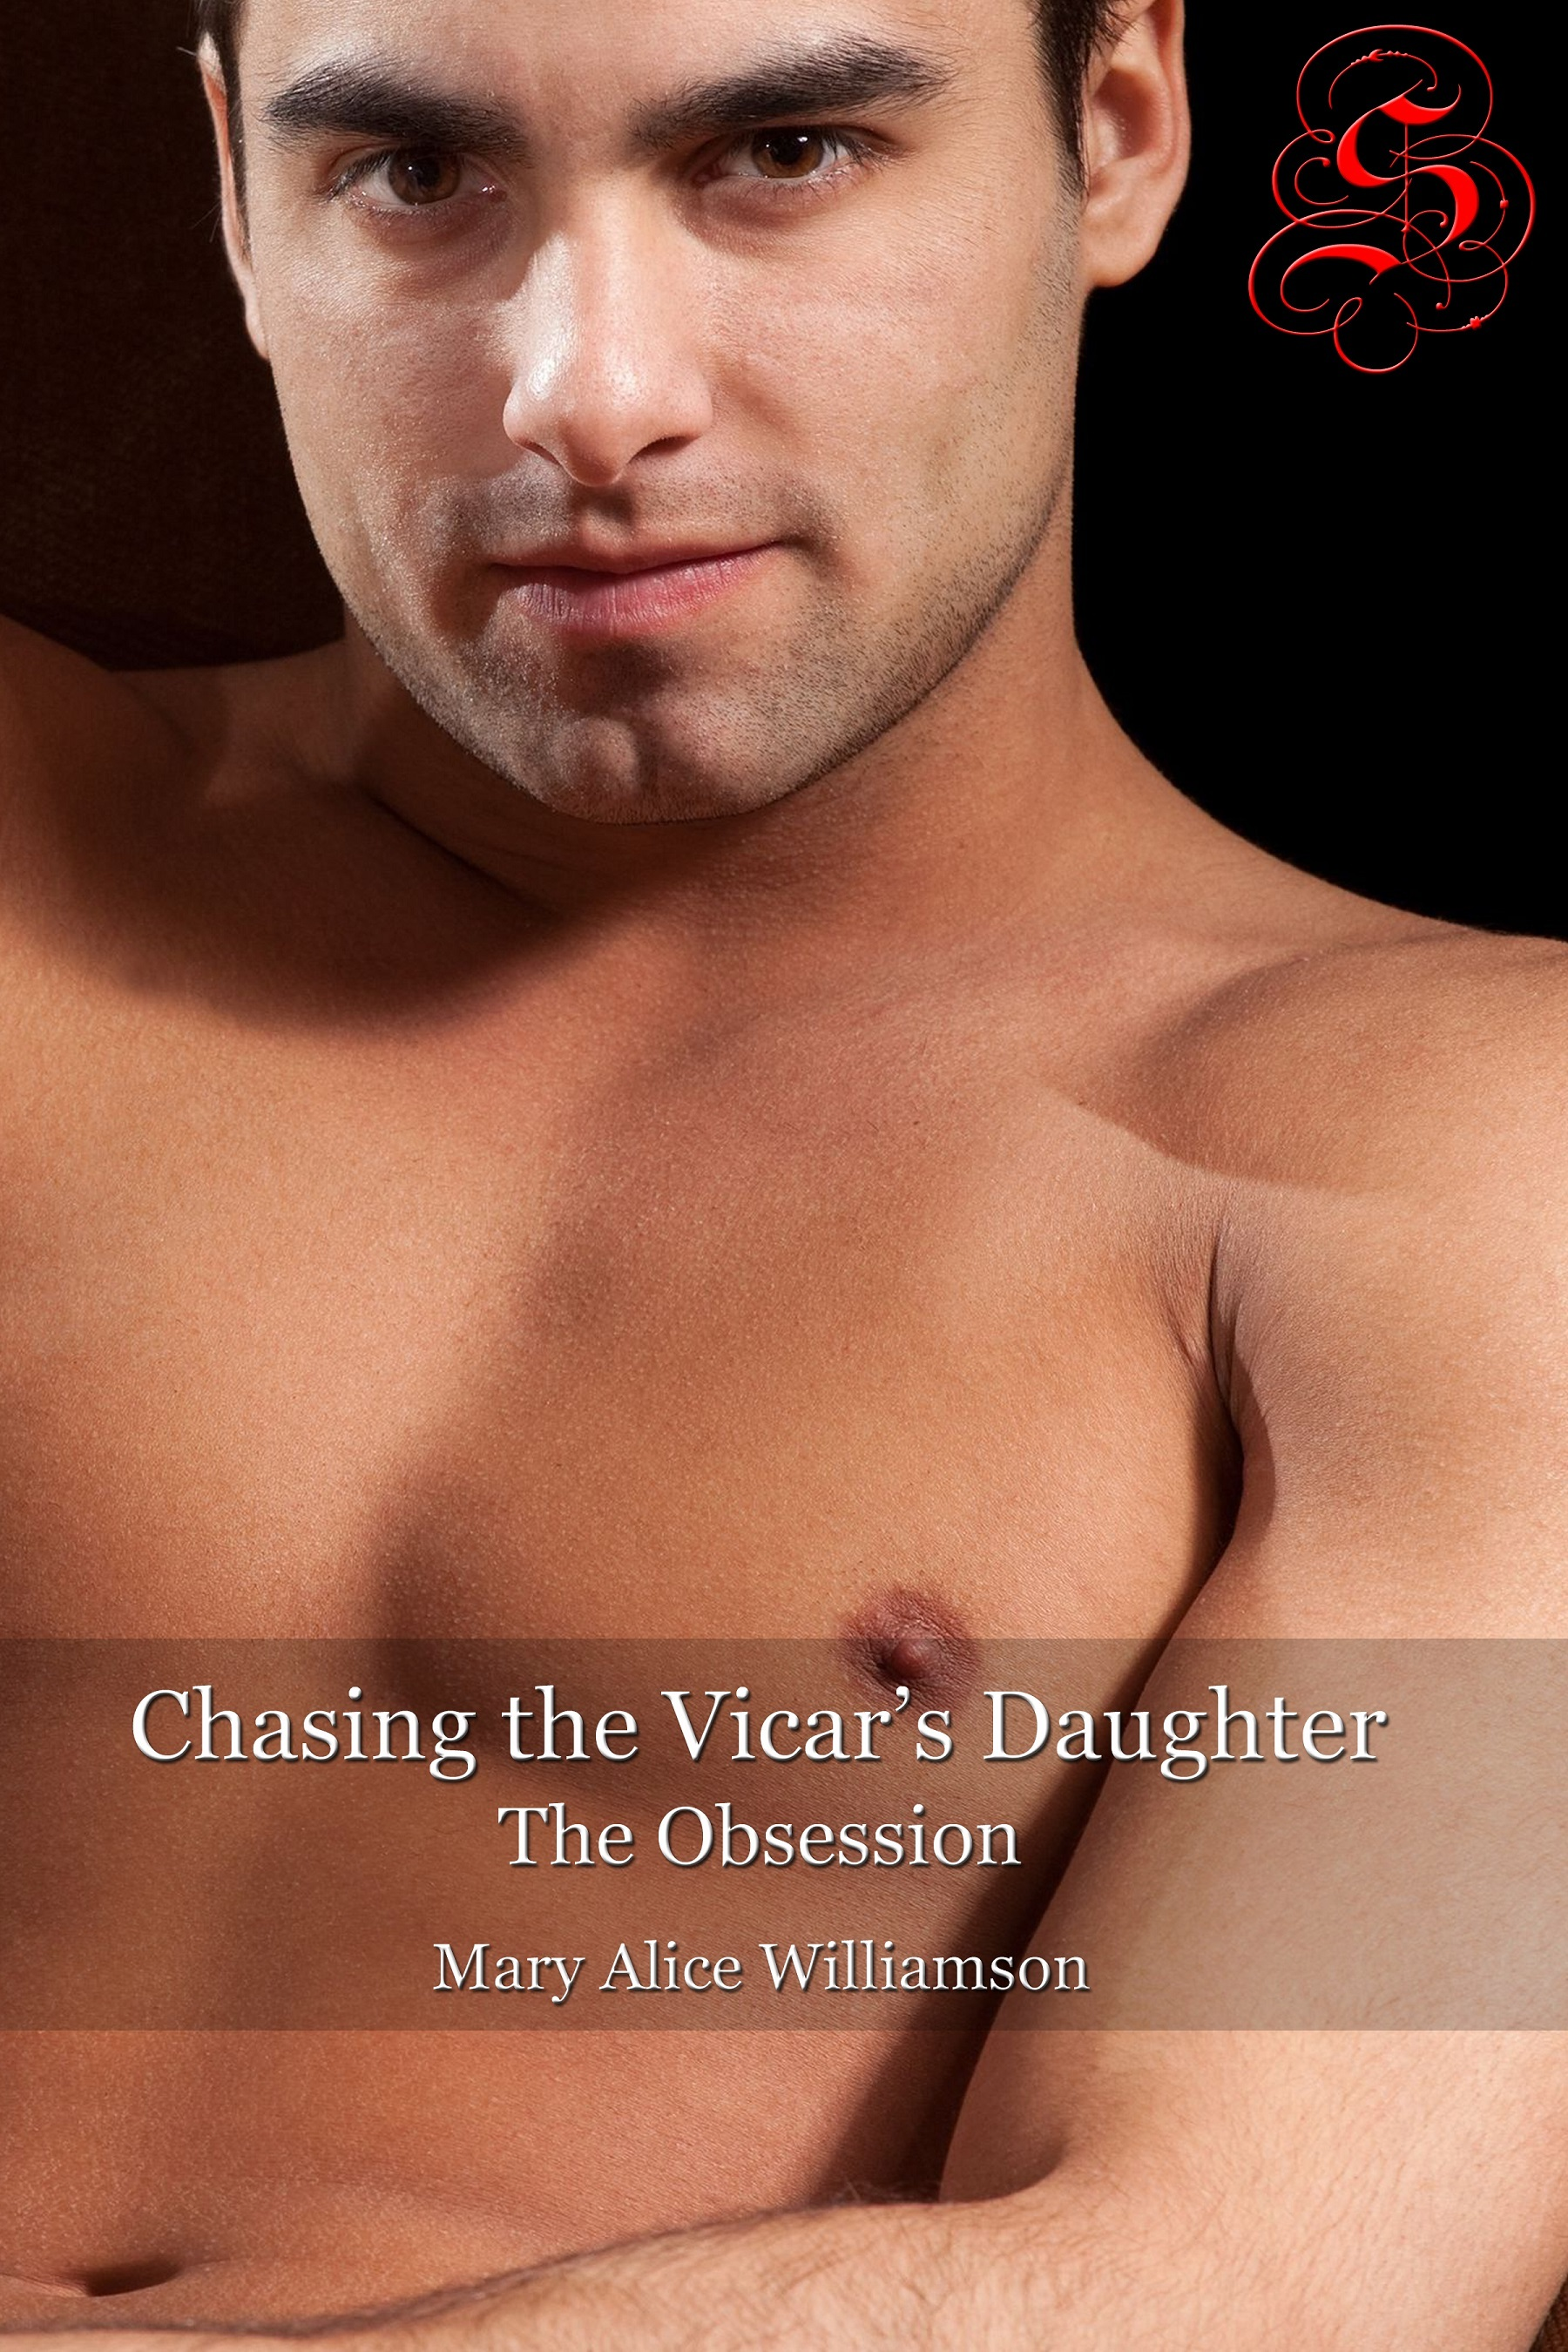 Mary Alice Williamson - Chasing the Vicar's Daughter: The Obsession - Image